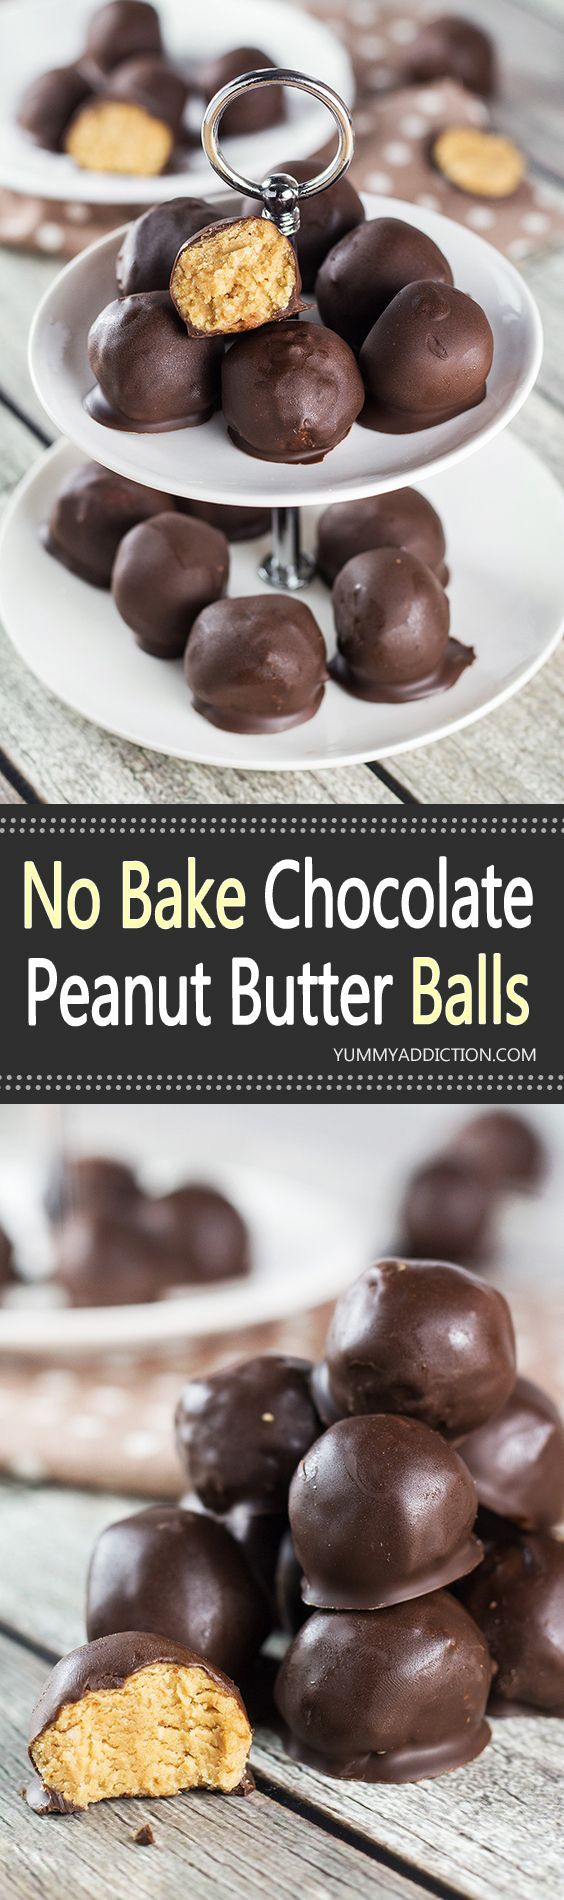 These No Bake Chocolate Peanut Butter Balls are everything you want them to be. Crazy delicious and really easy to make, they make a perfect dessert for any occasion!   yummyaddiction.com